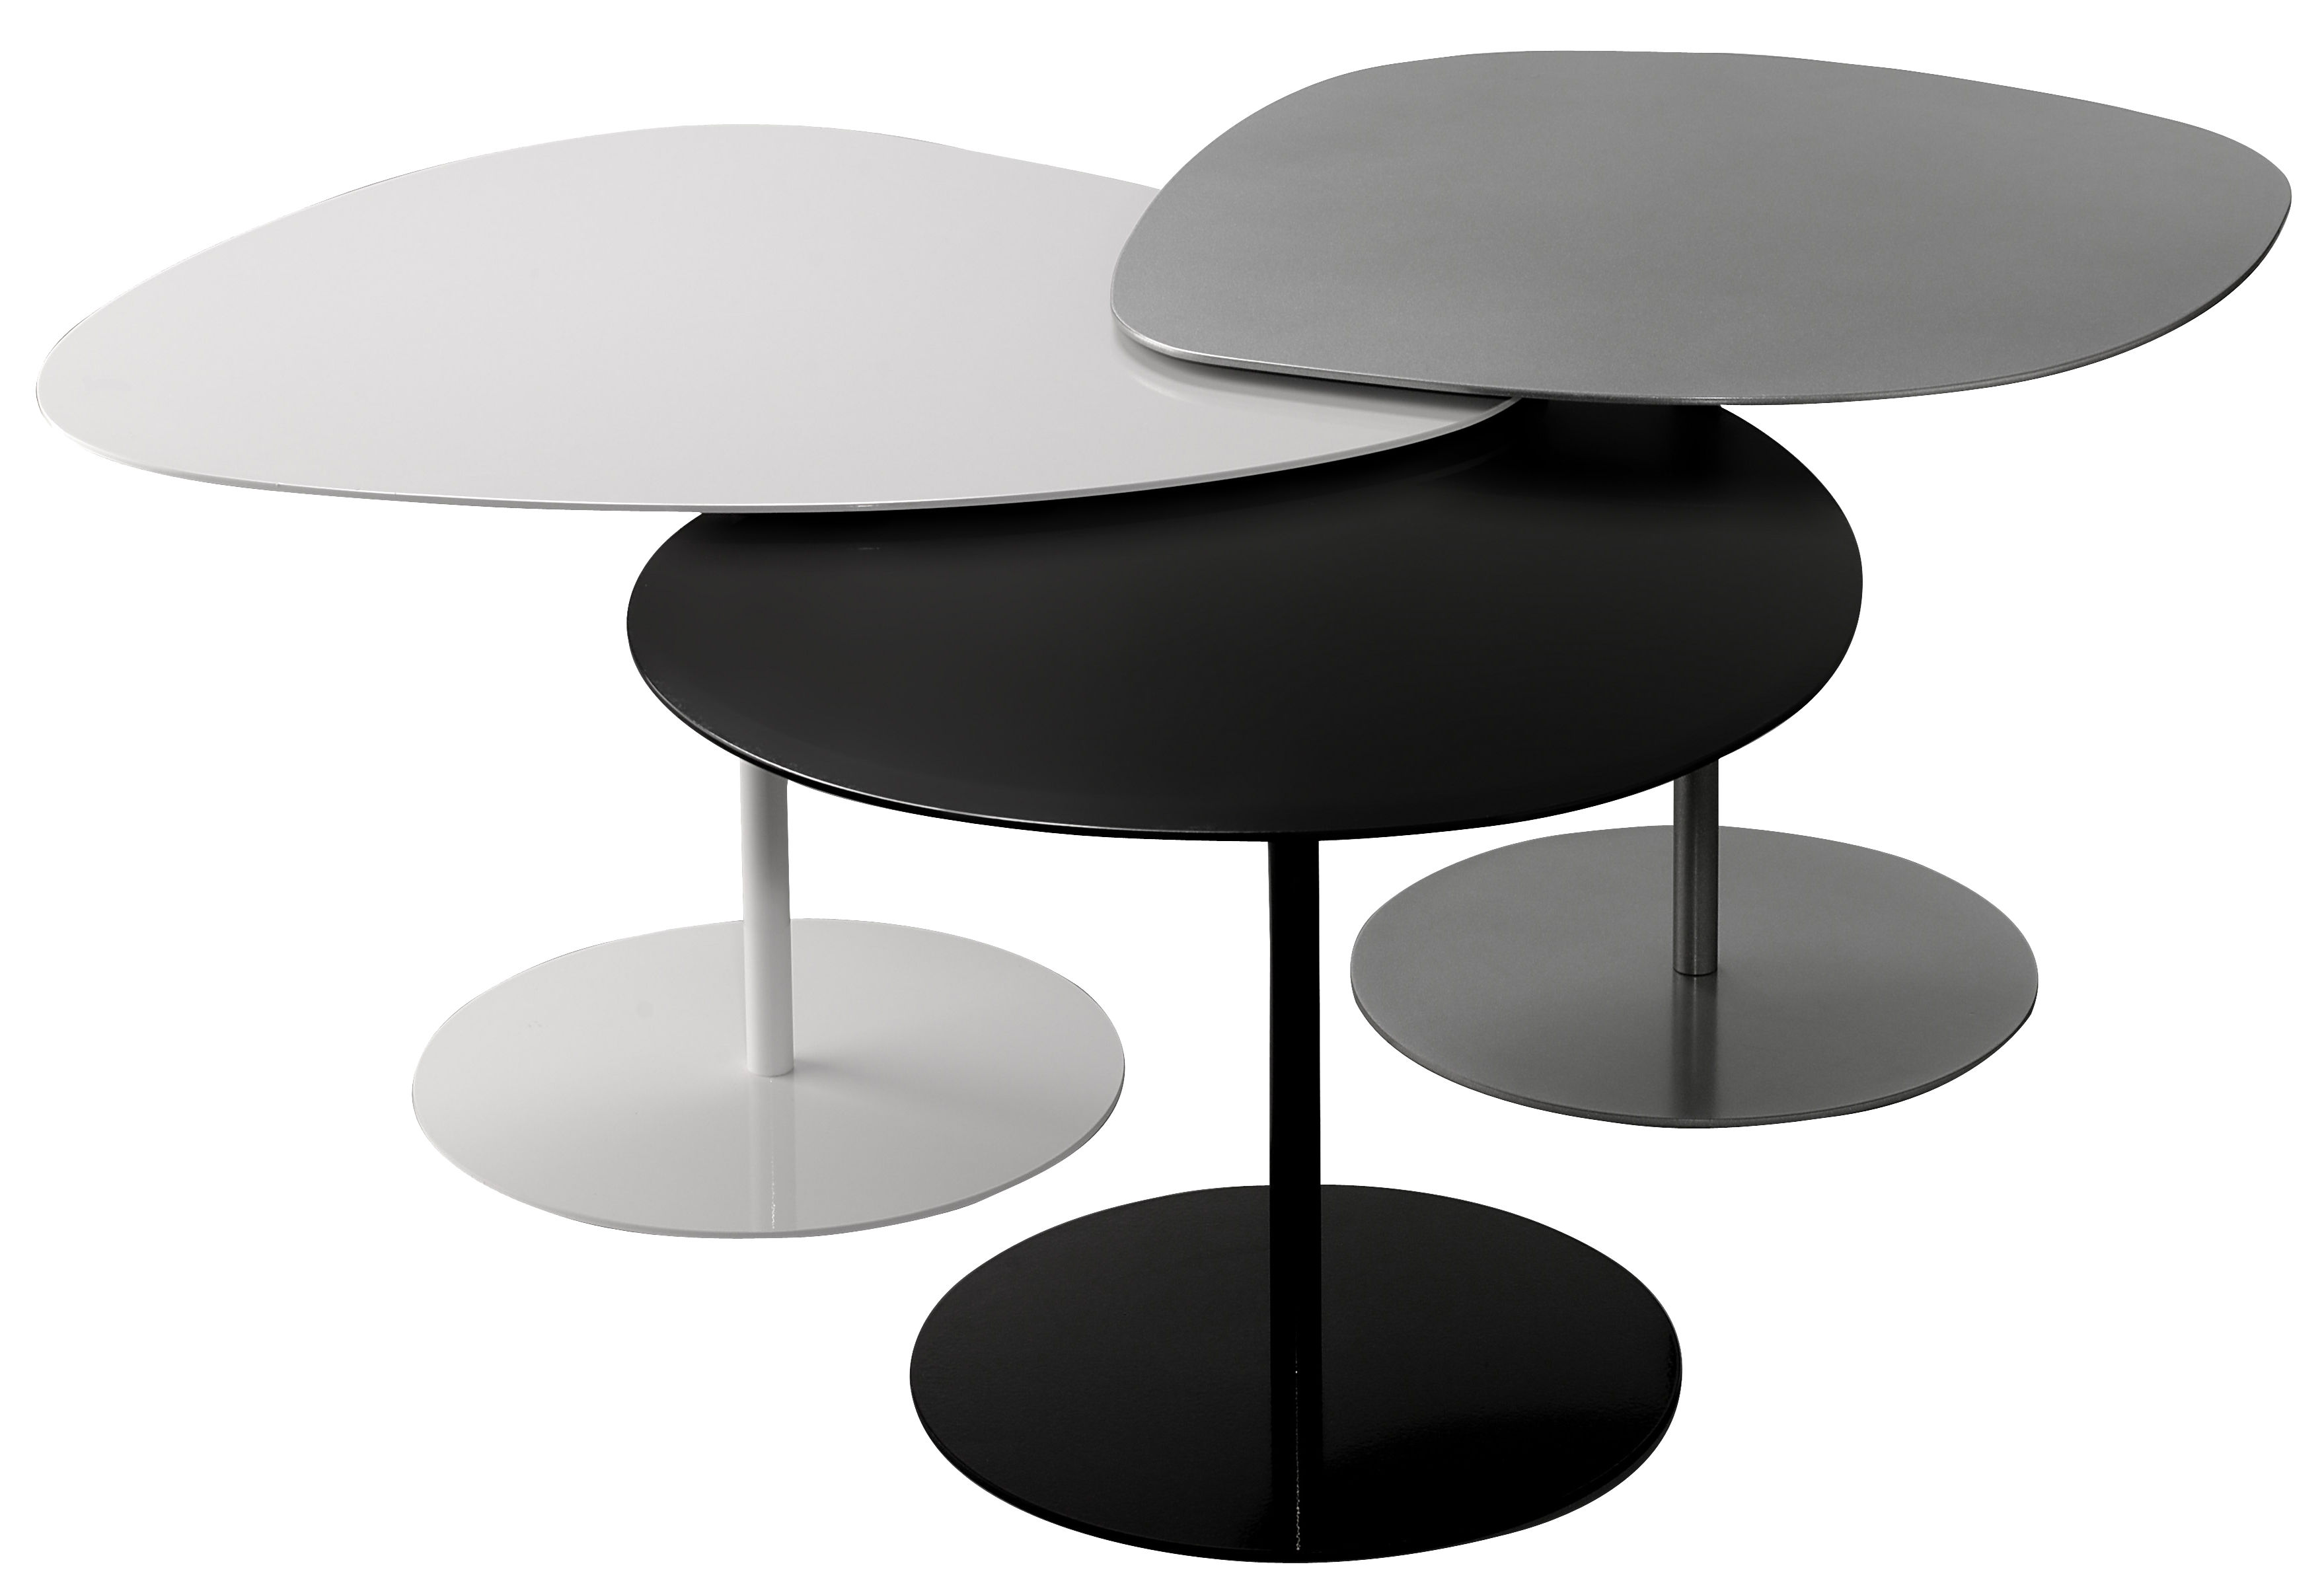 Table basse 3 galets set de 3 tables gigognes noir - Table basse gigogne design ...